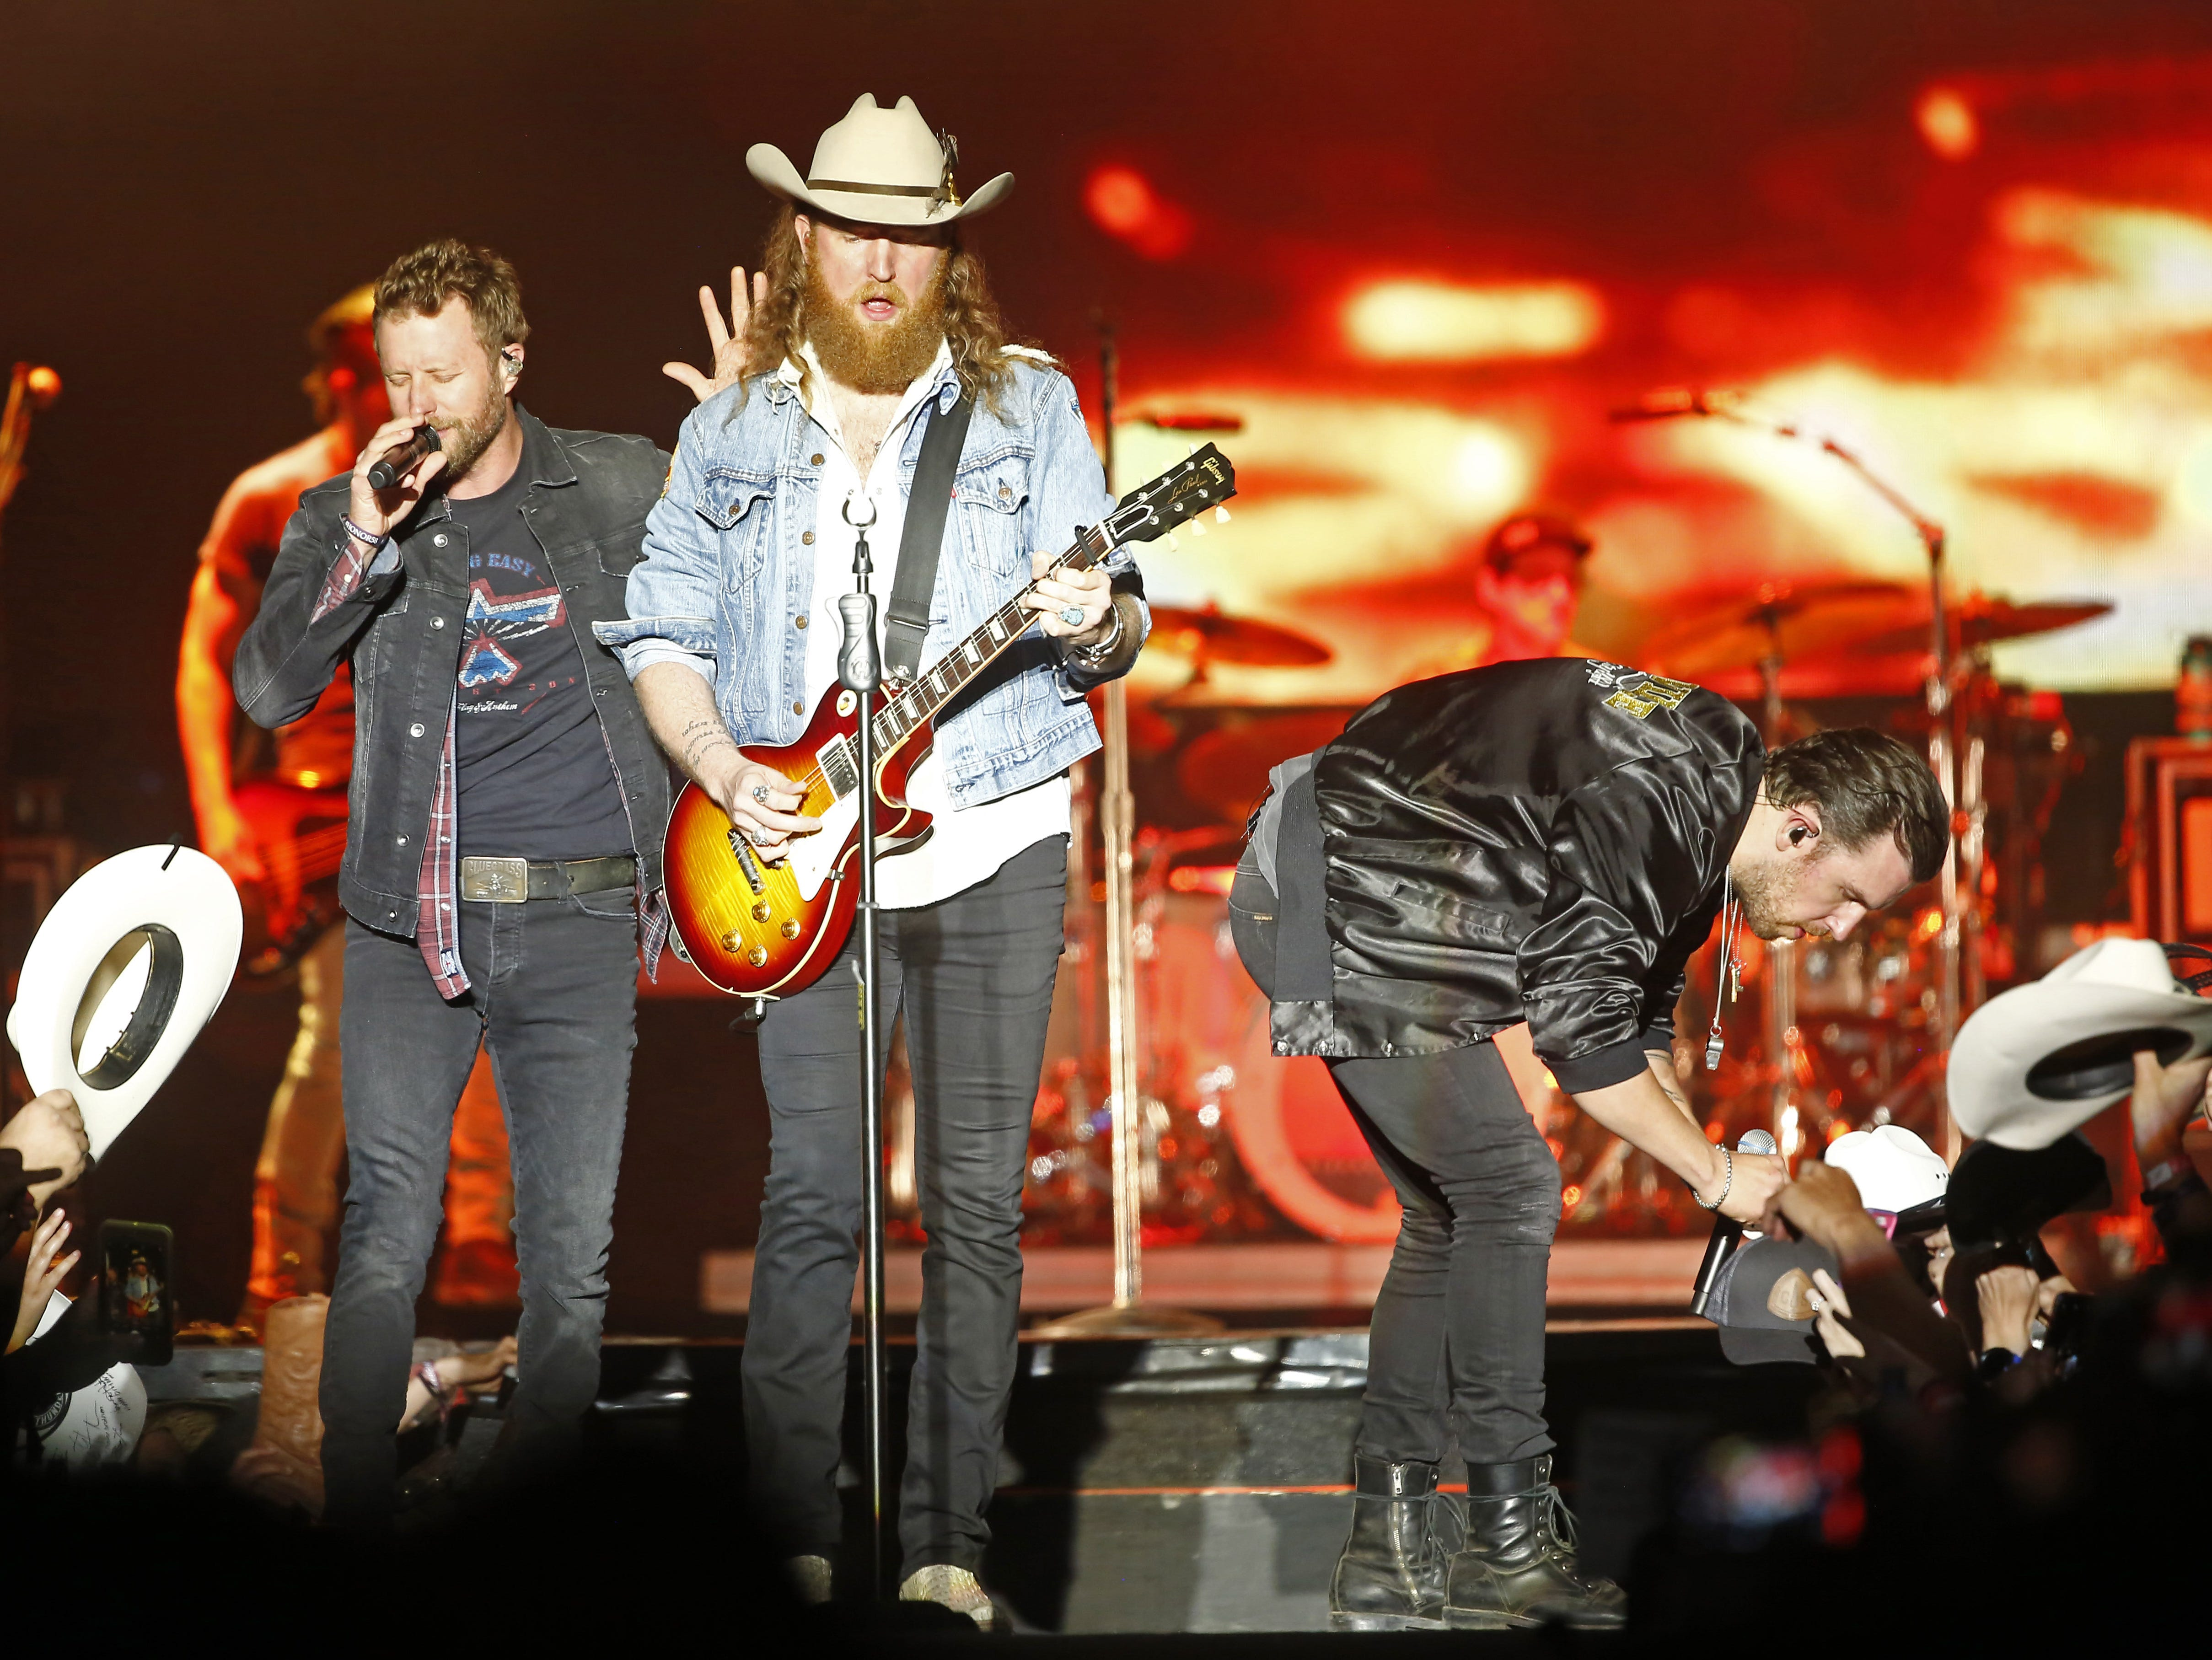 """Dierks Bentley performs """"Burning Man"""" with Brothers Osborne during Country Thunder in Florence, Ariz. on Saturday, April 13, 2019."""